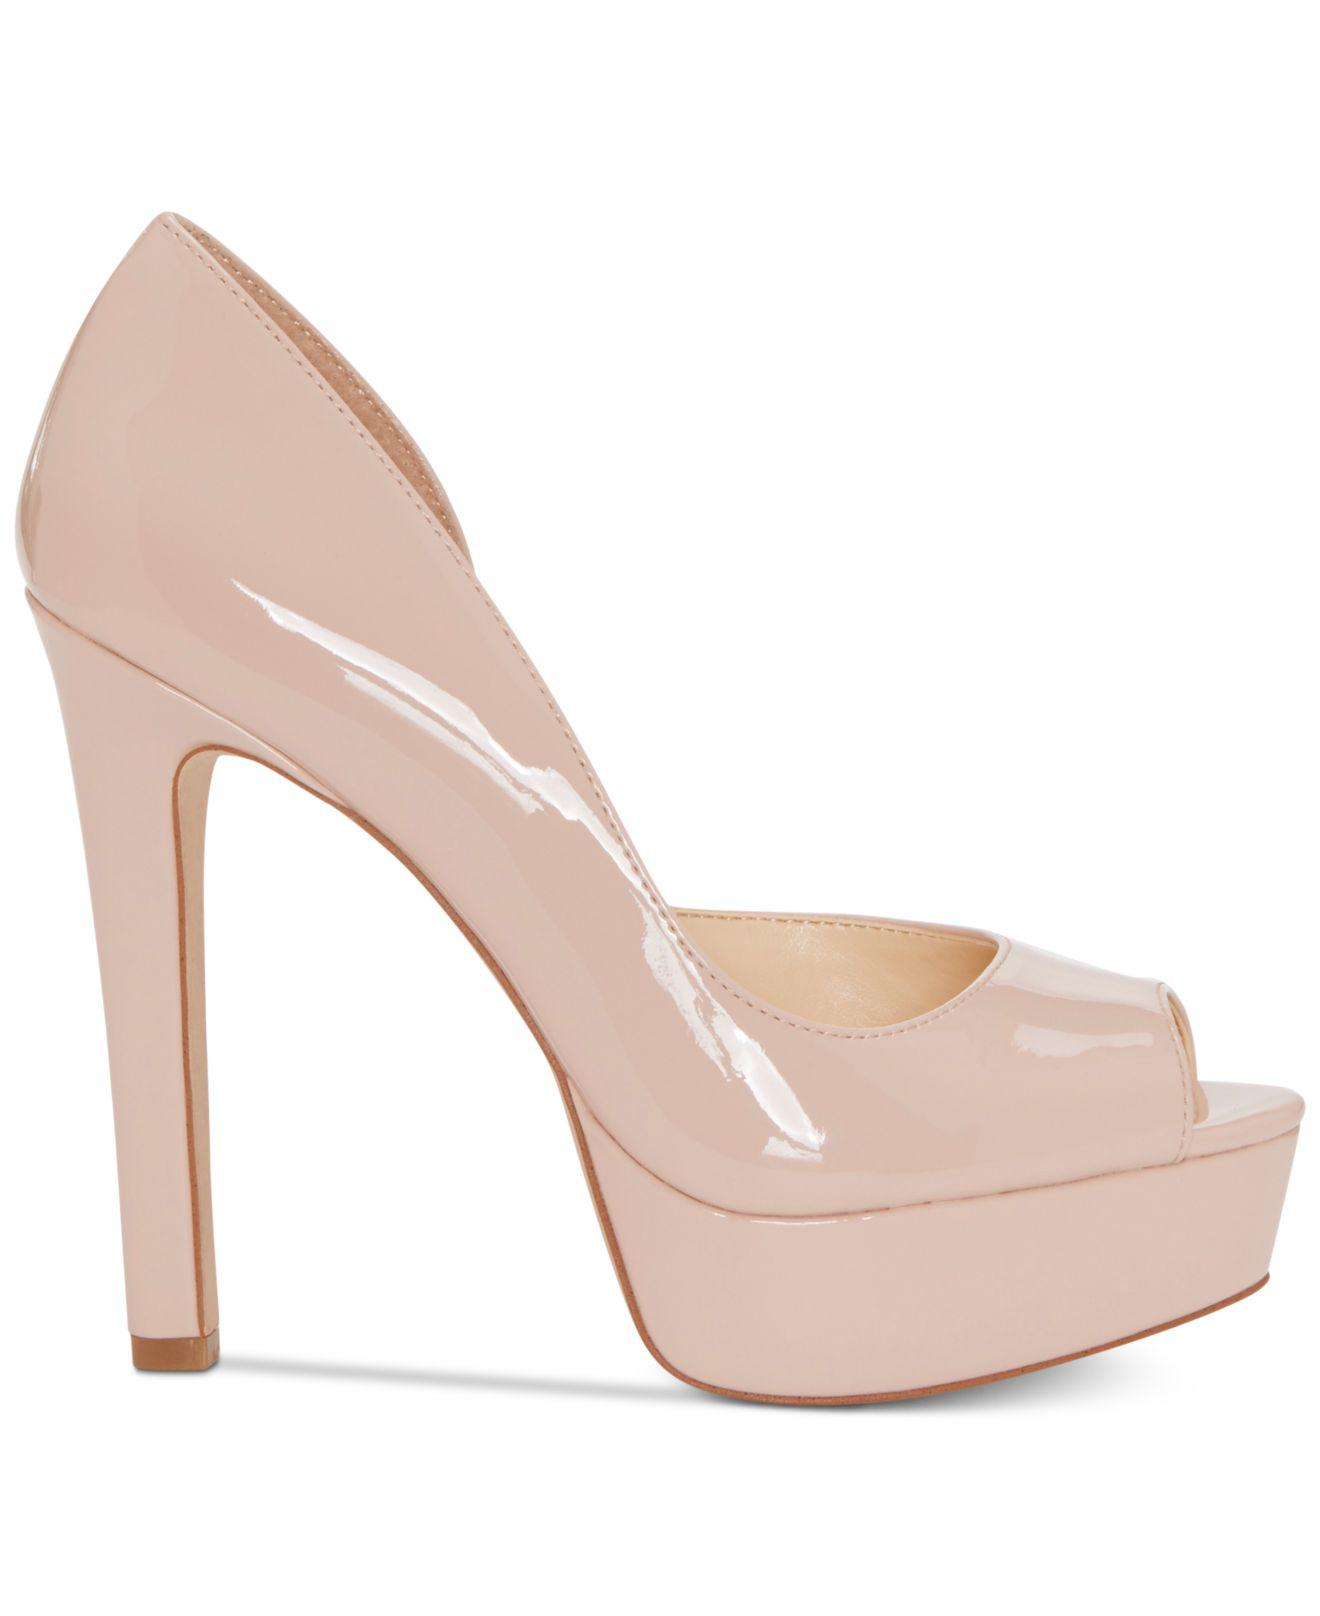 d595dedd3de Lyst - Jessica Simpson Martella Peep-toe Platform Pumps in Natural - Save  61%